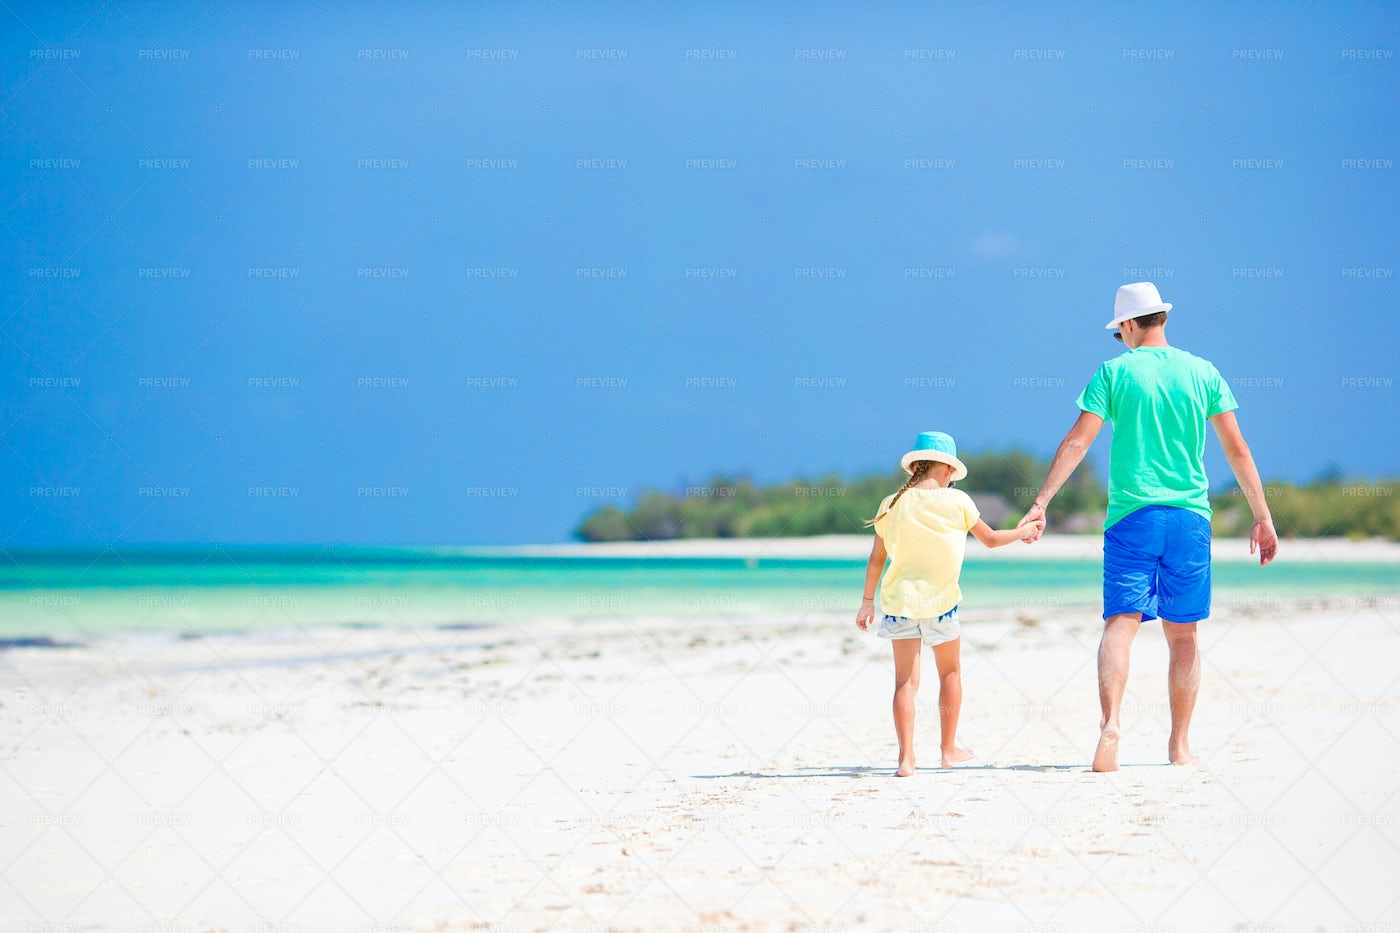 Holding Hands On Holiday: Stock Photos